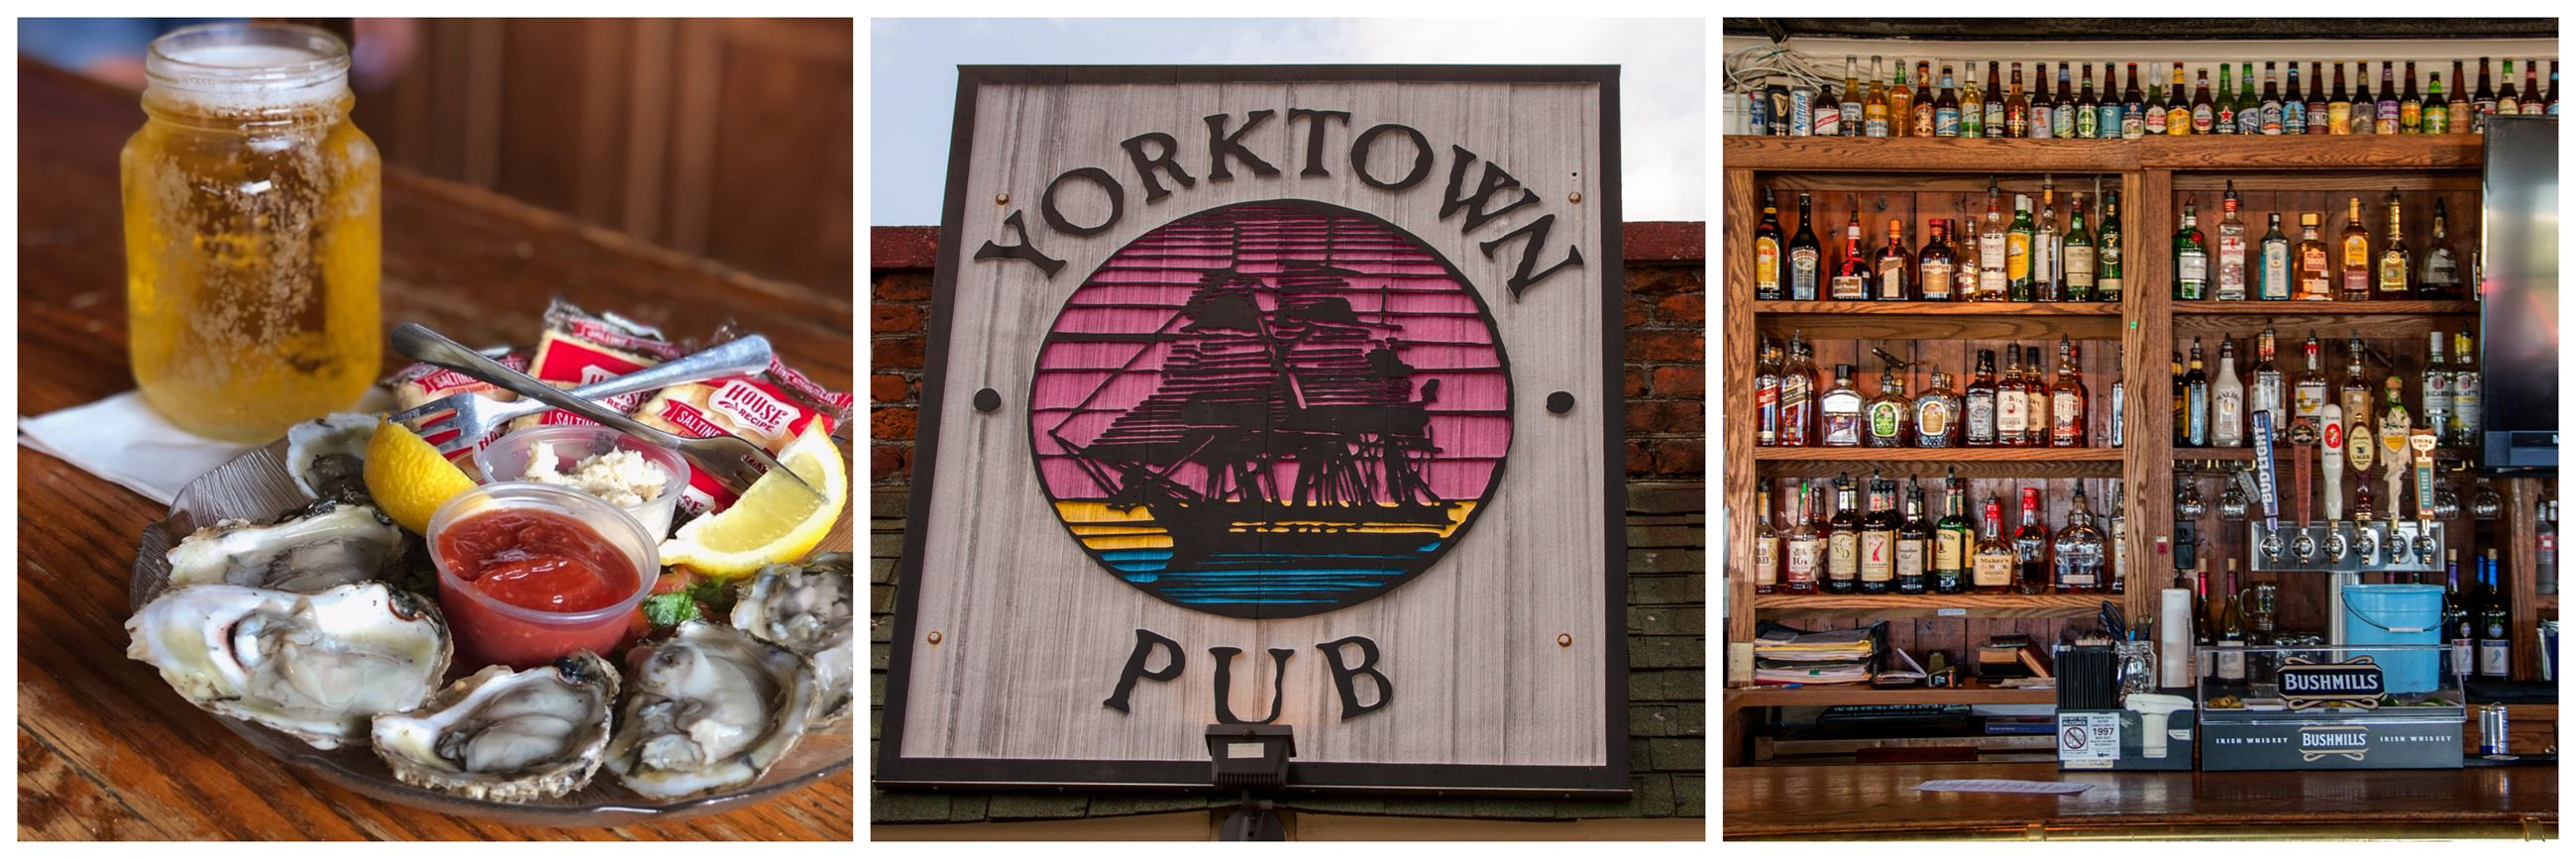 Yorktown Pub beer and oysters